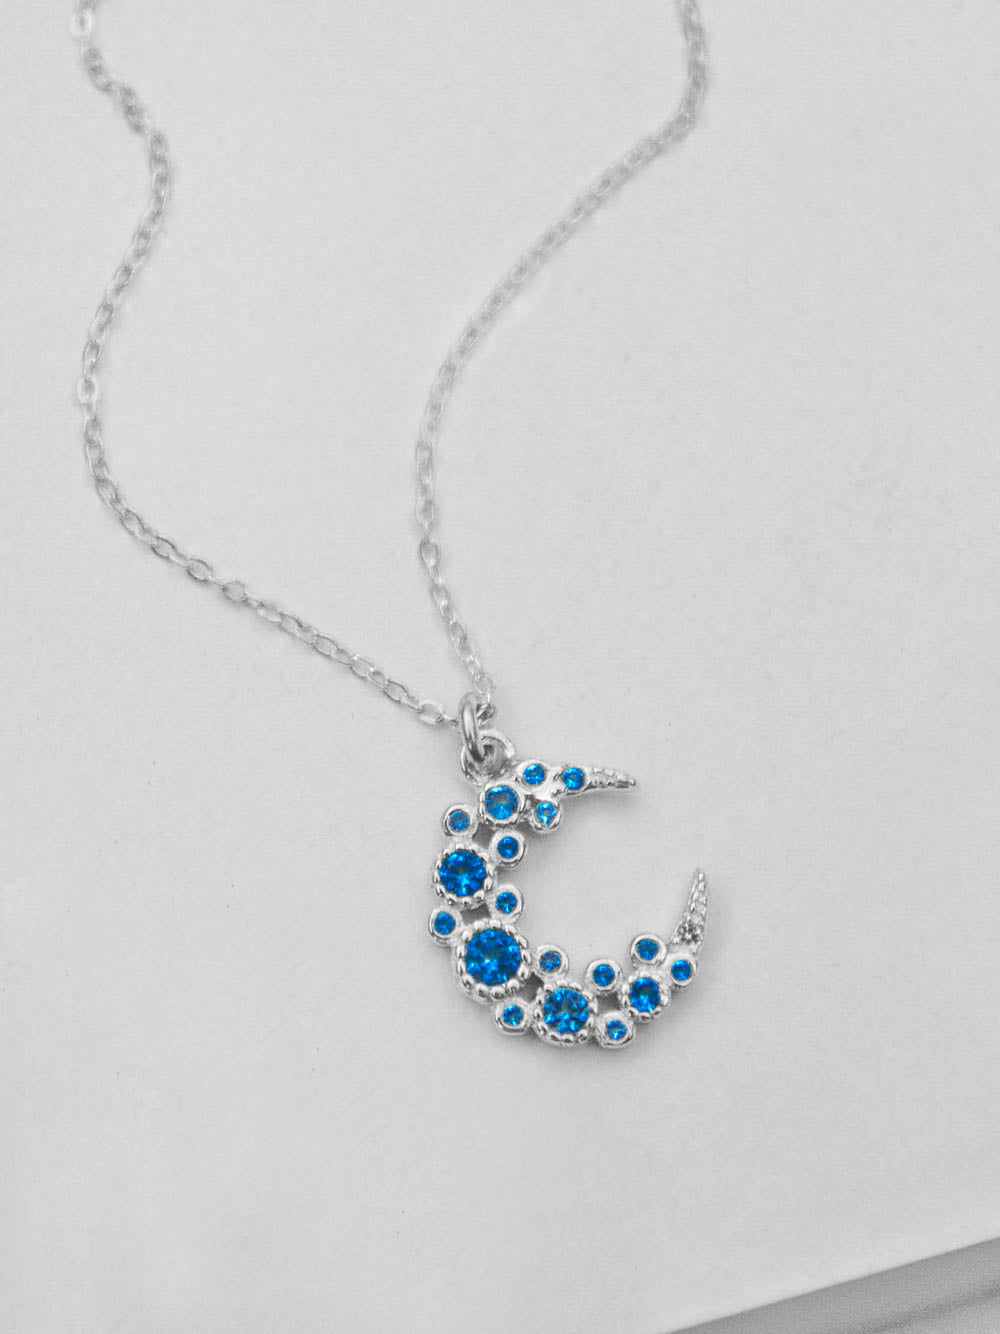 Blue Cluster Moon CZ Charm Silver Necklace  by The Faint Hearted Jewelry